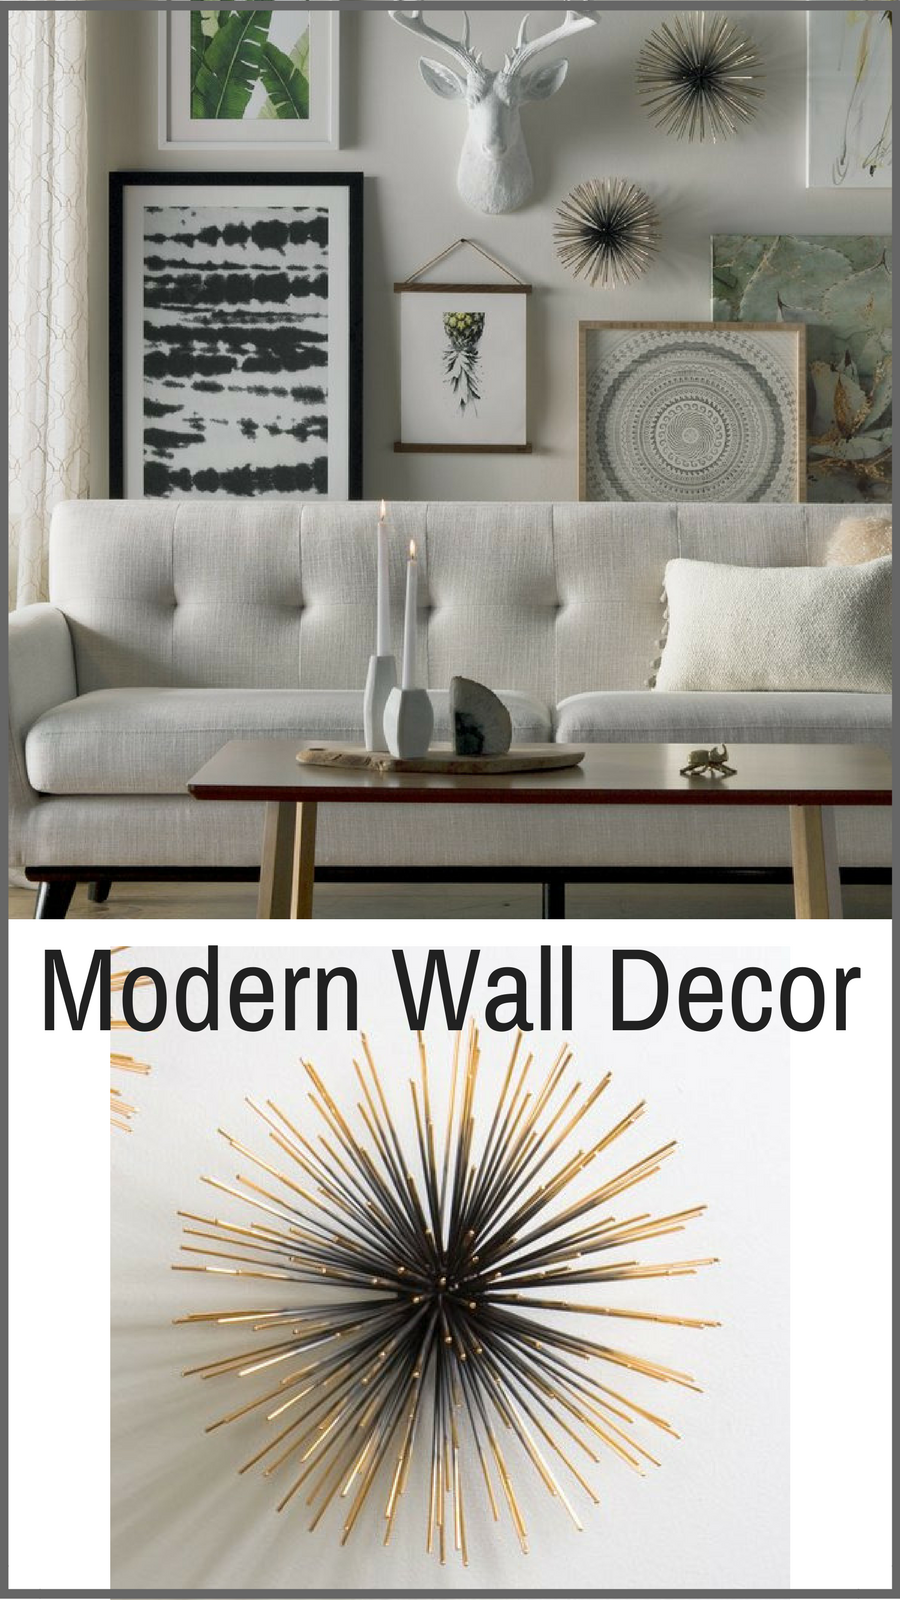 Modern metal wall decor adds texture and interest to your gallery